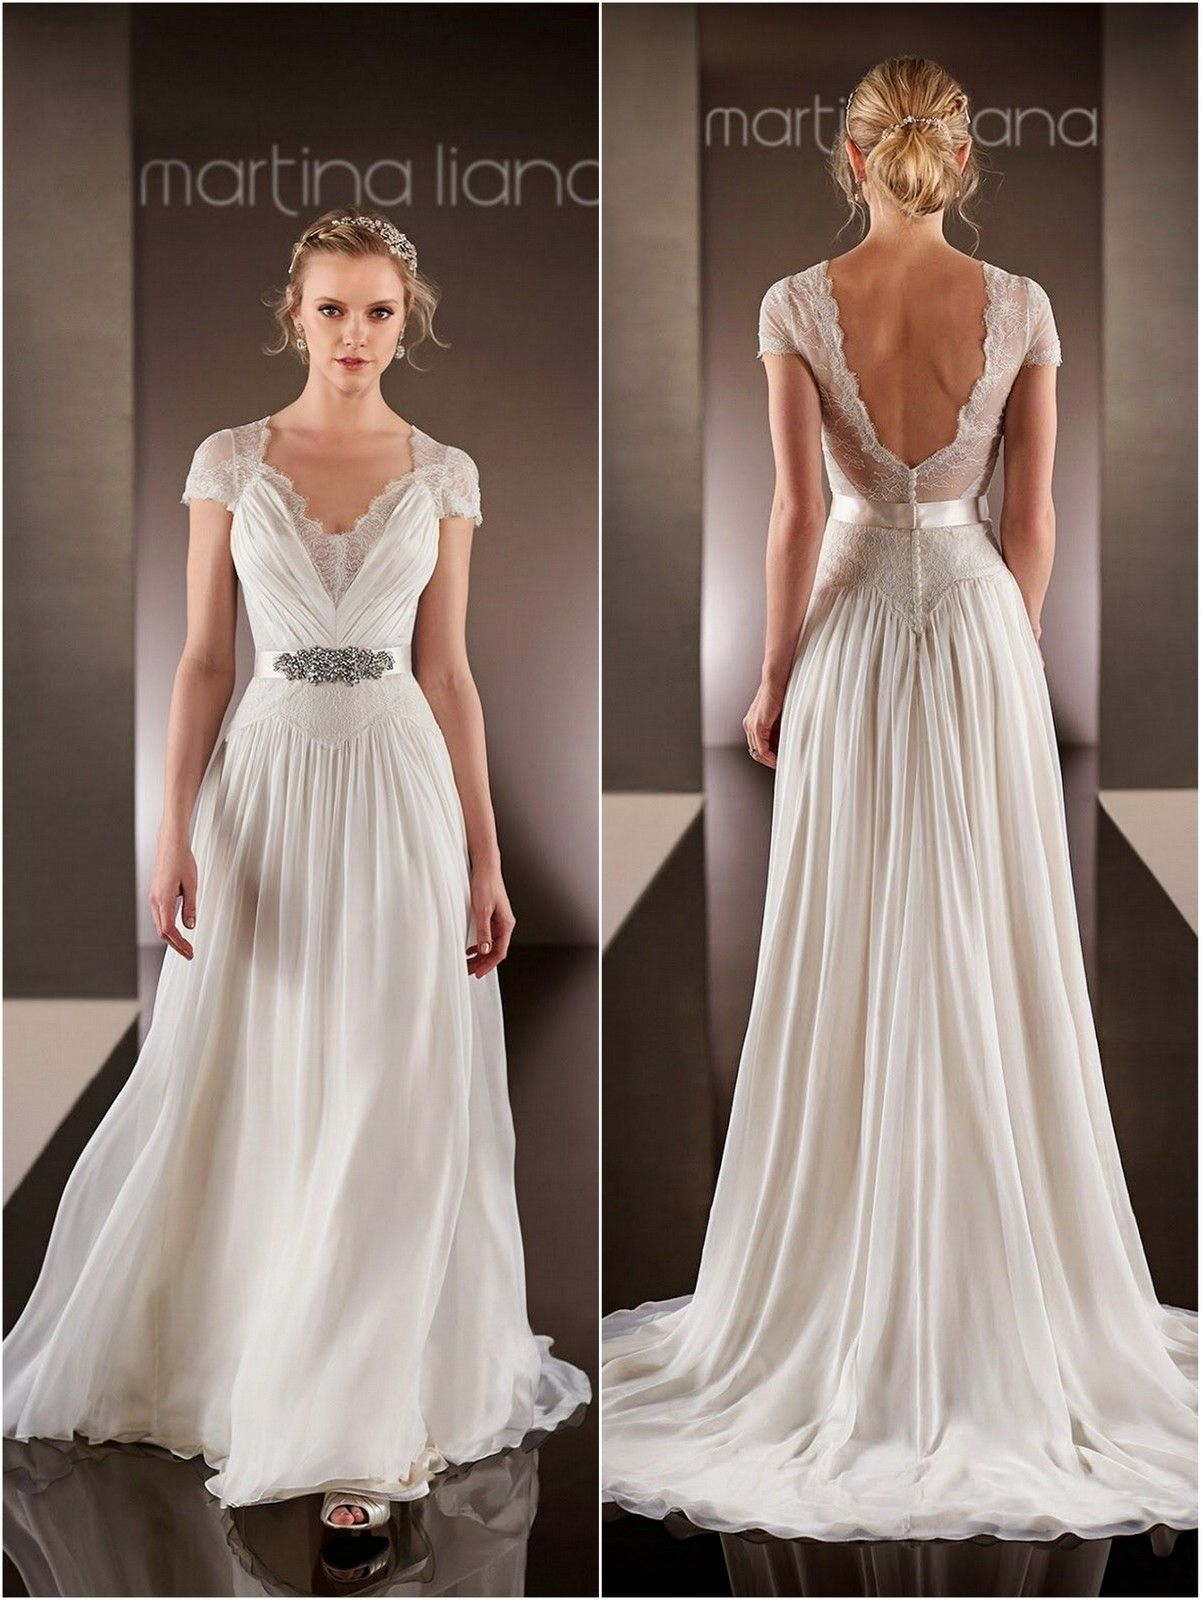 Martina liana wedding dresses 2015 wedding dresses wedding martina liana wedding dresses ombrellifo Image collections